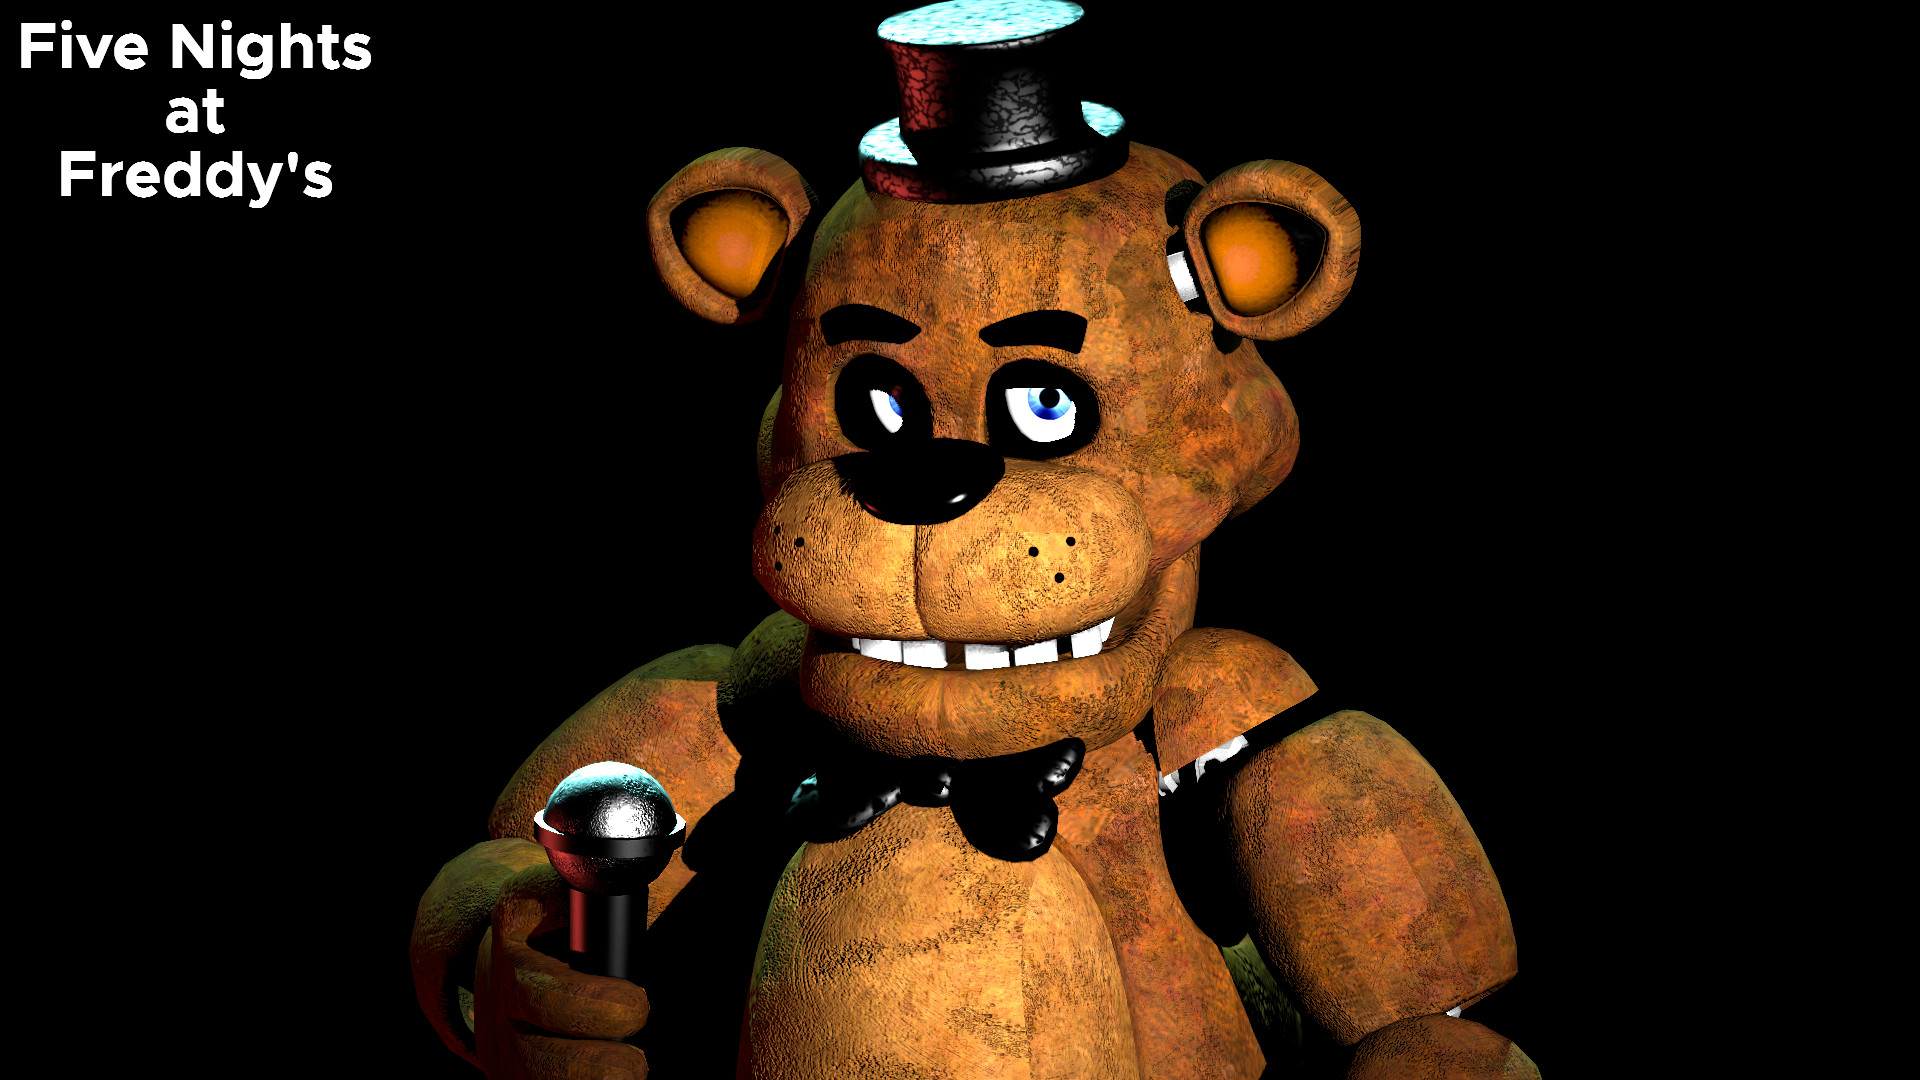 1920x1080 RenderWallpaper preview (Full will be shown on FNaF 1's Bday) ...